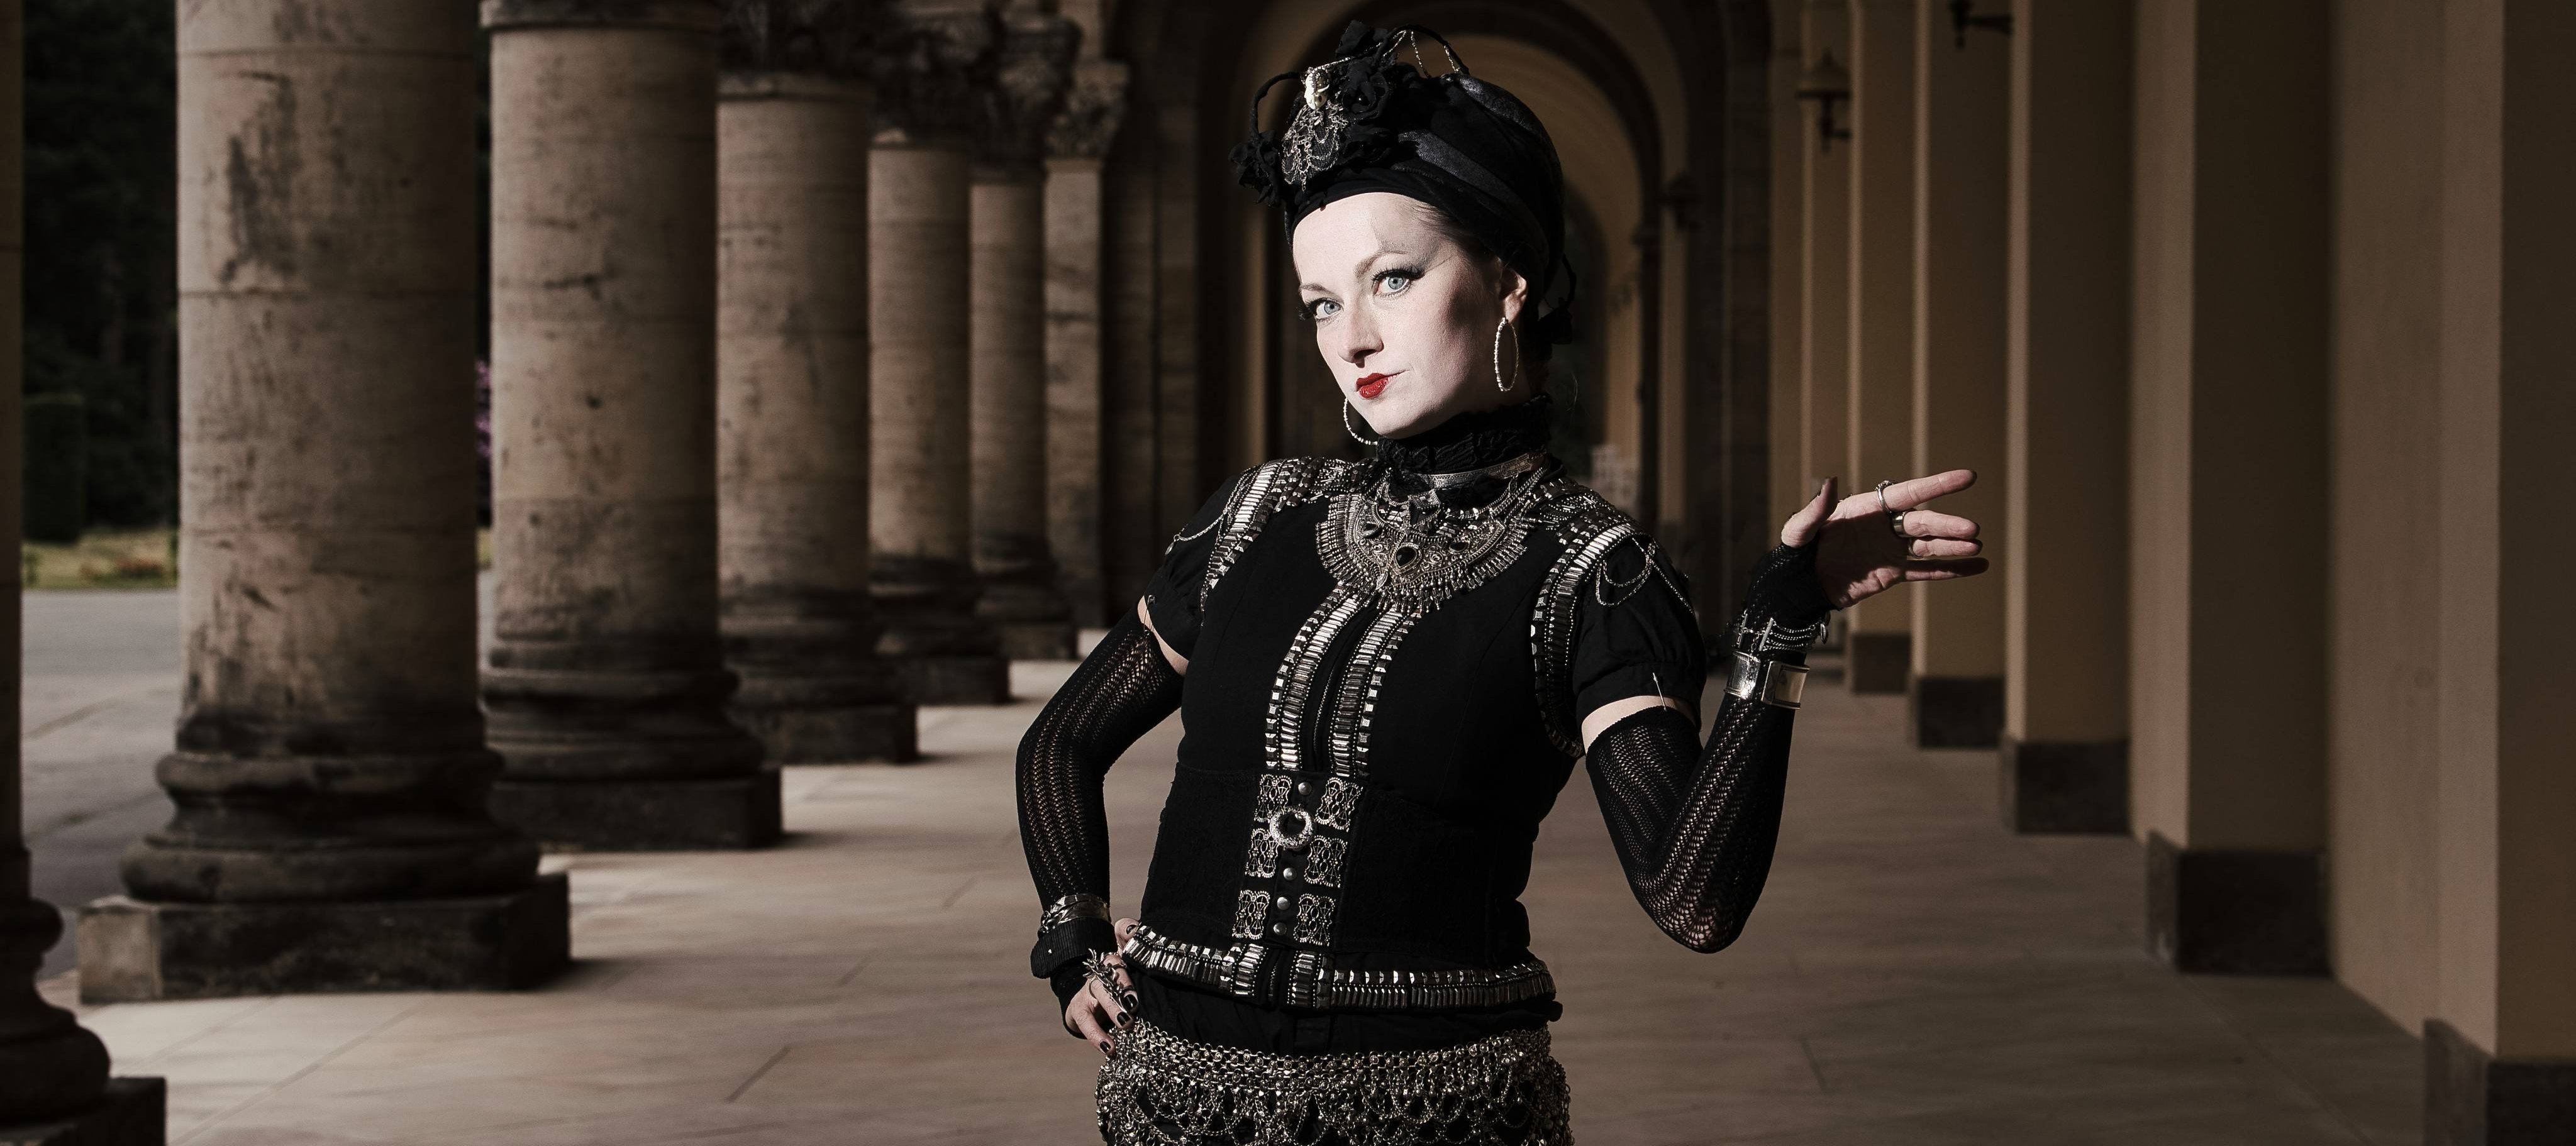 Gothic Accessoires bei Faunauge